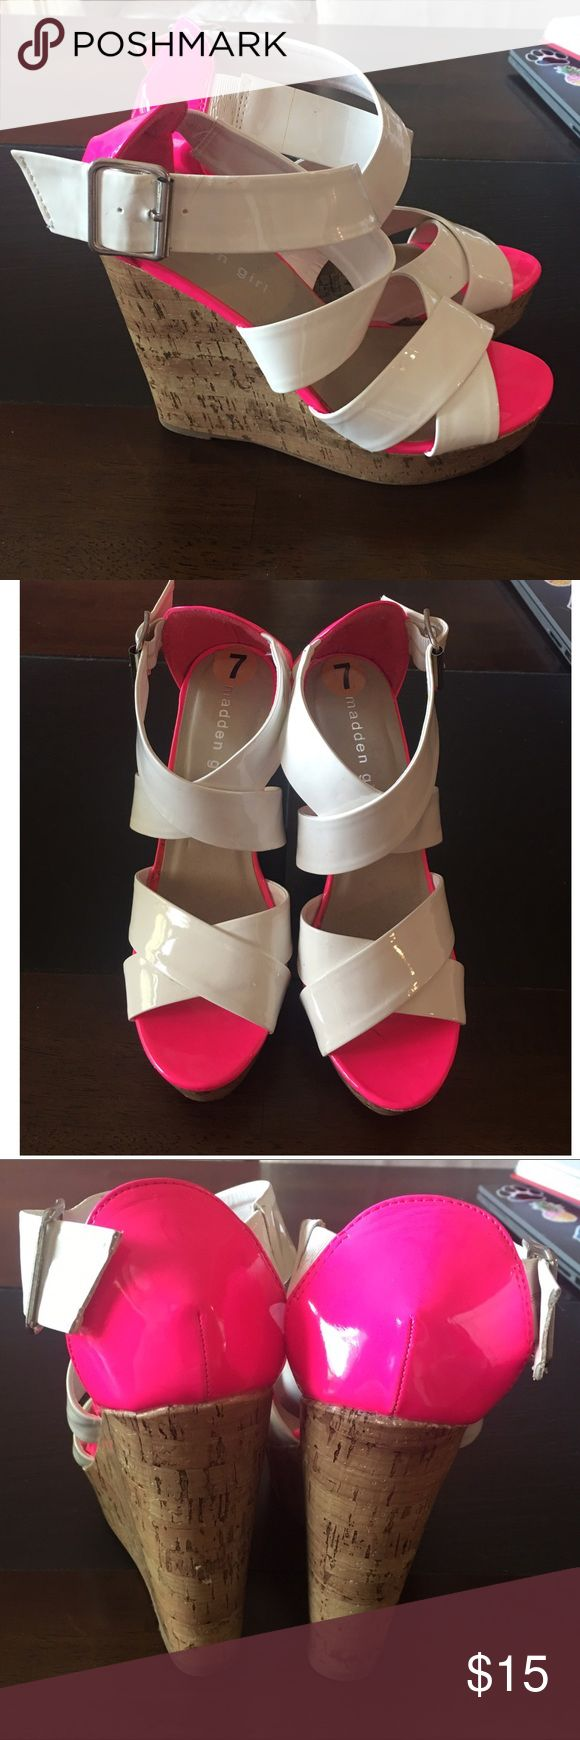 New hot pink & white wedges New hot pink & white wedges. In excellent condition. Never worn! Comes from a smoke free home. Madden Girl Shoes Wedges